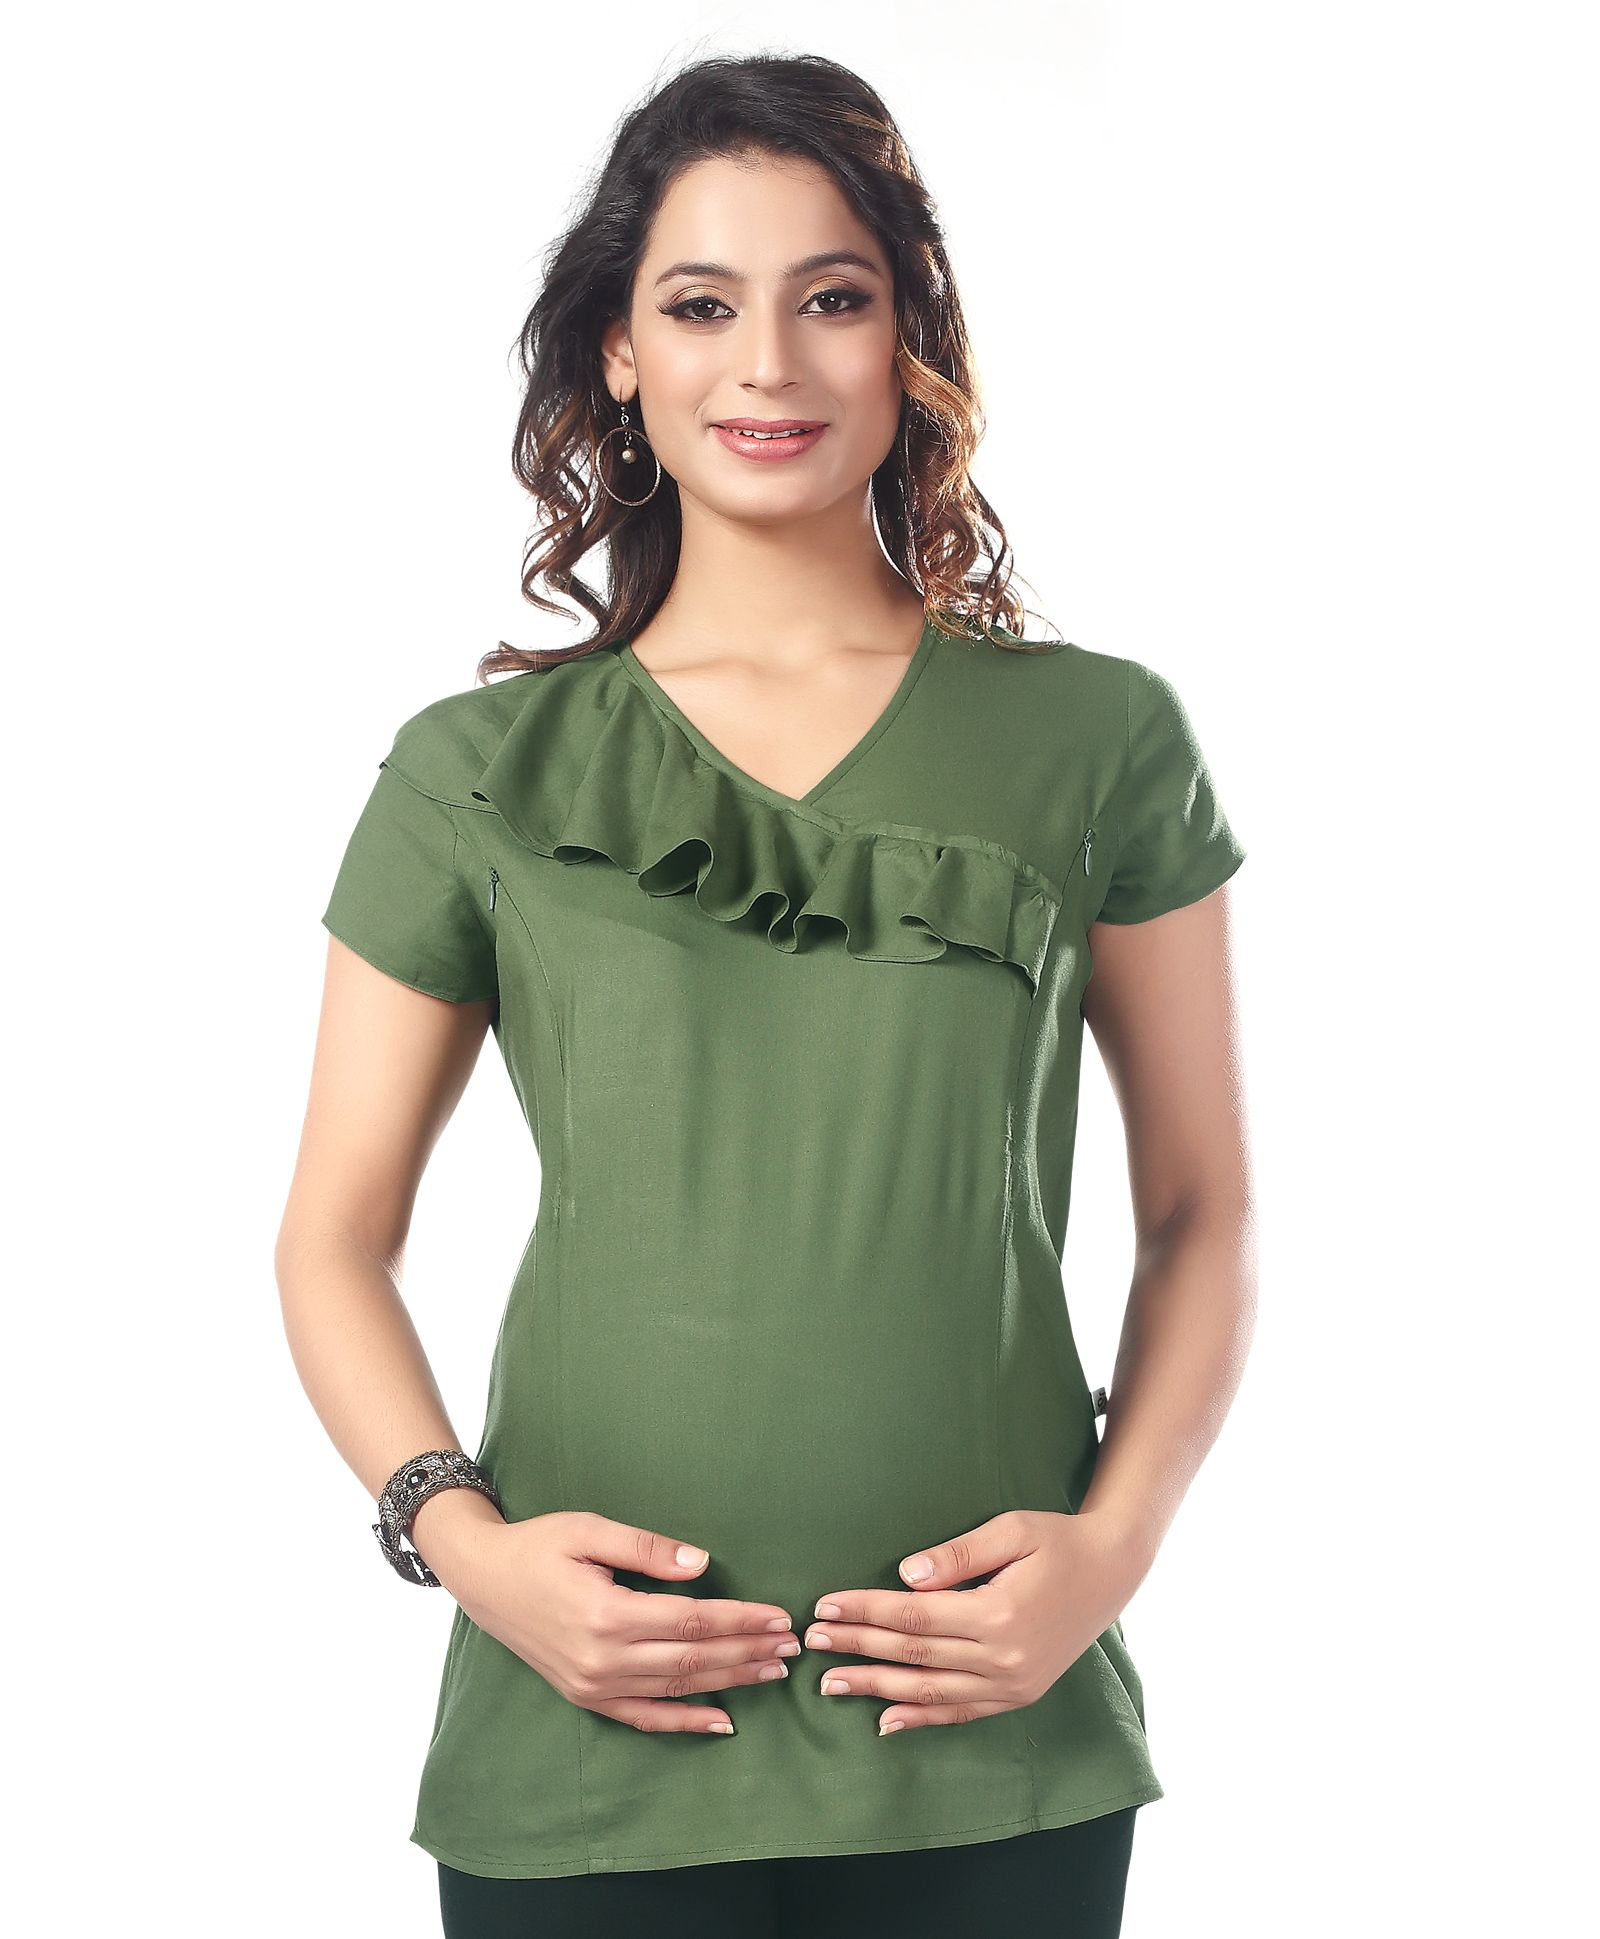 eaa34ca2238 Kriti Short Sleeves Maternity Top Frill Design Olive Green Online in ...